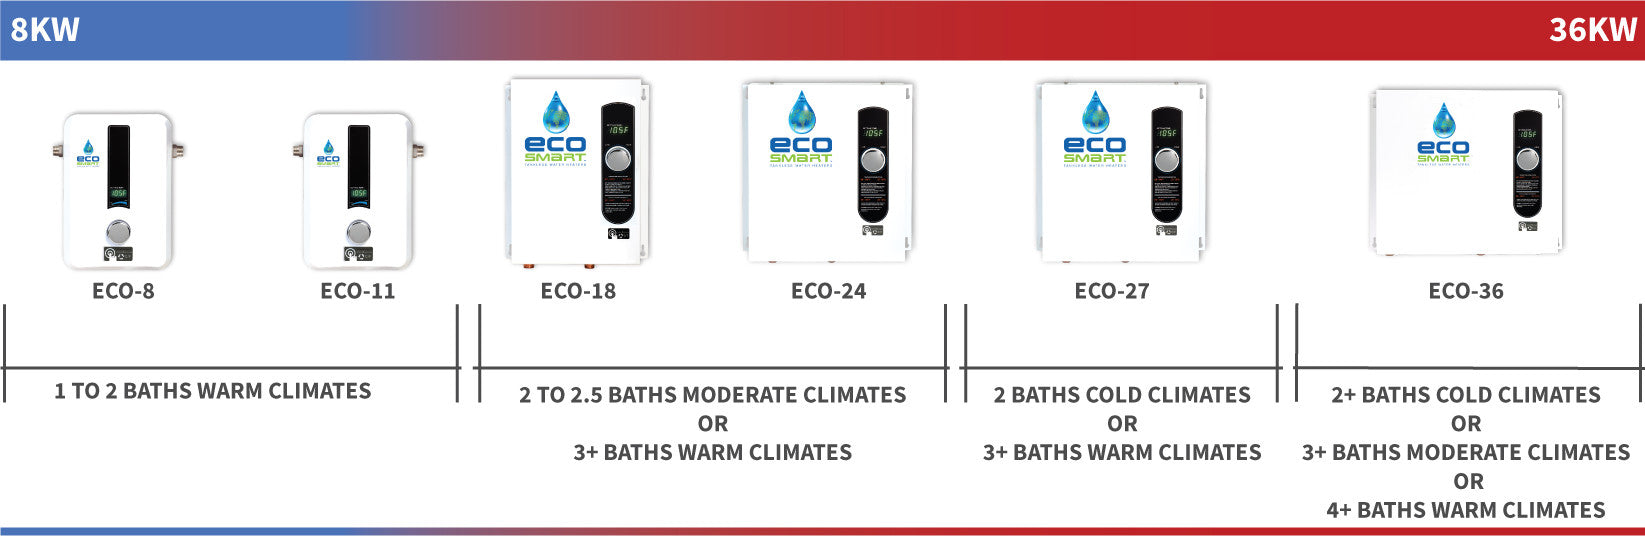 EcoSmart electric tankless water heater size guide displaying heaters from smallest to biggest